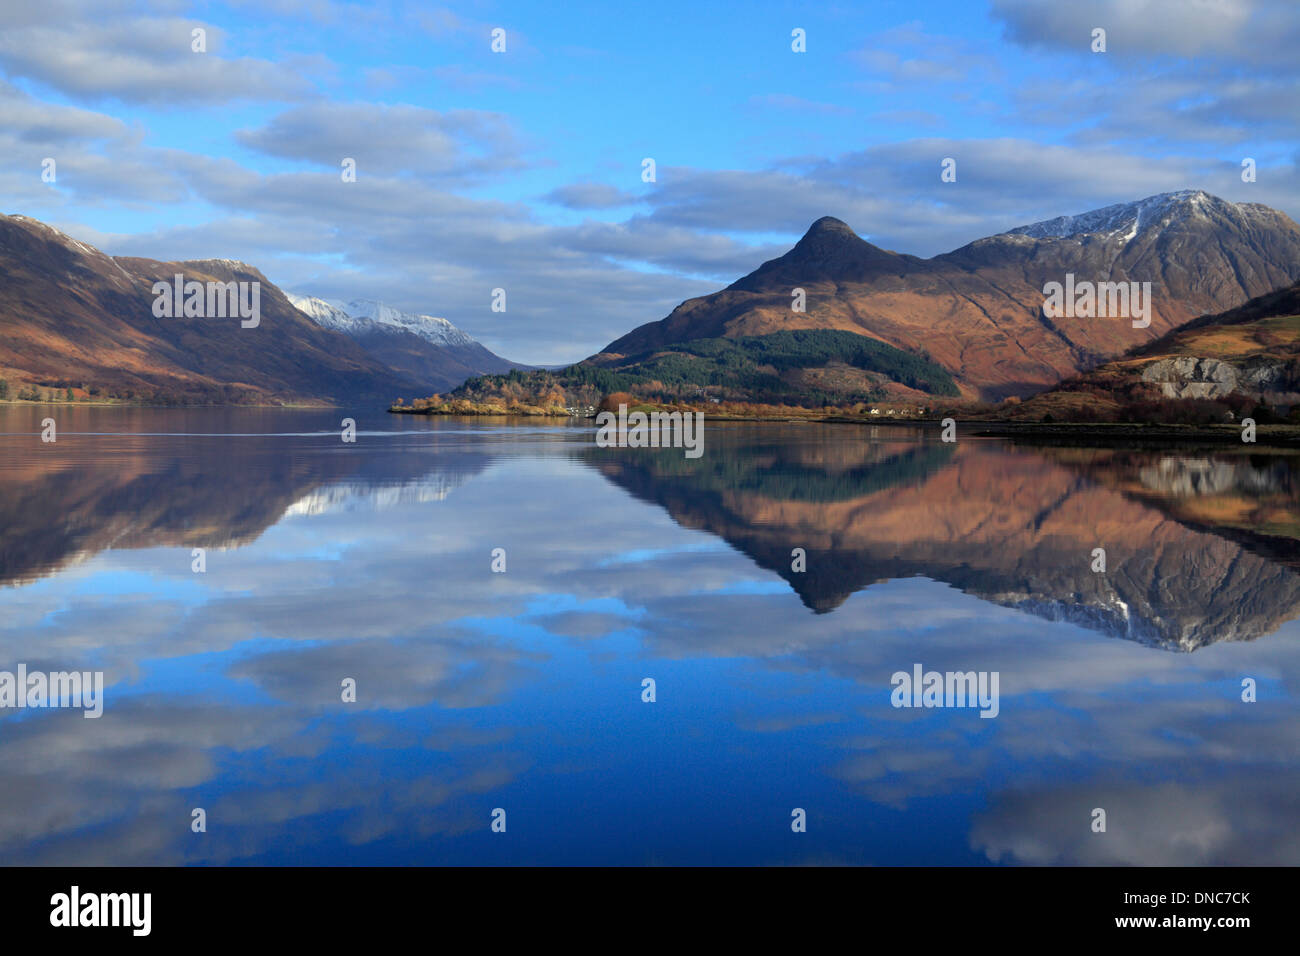 Pap of Glencoe reflected in the glass calm Loch Leven in Ballachulish, Highlands, Scotland - Stock Image